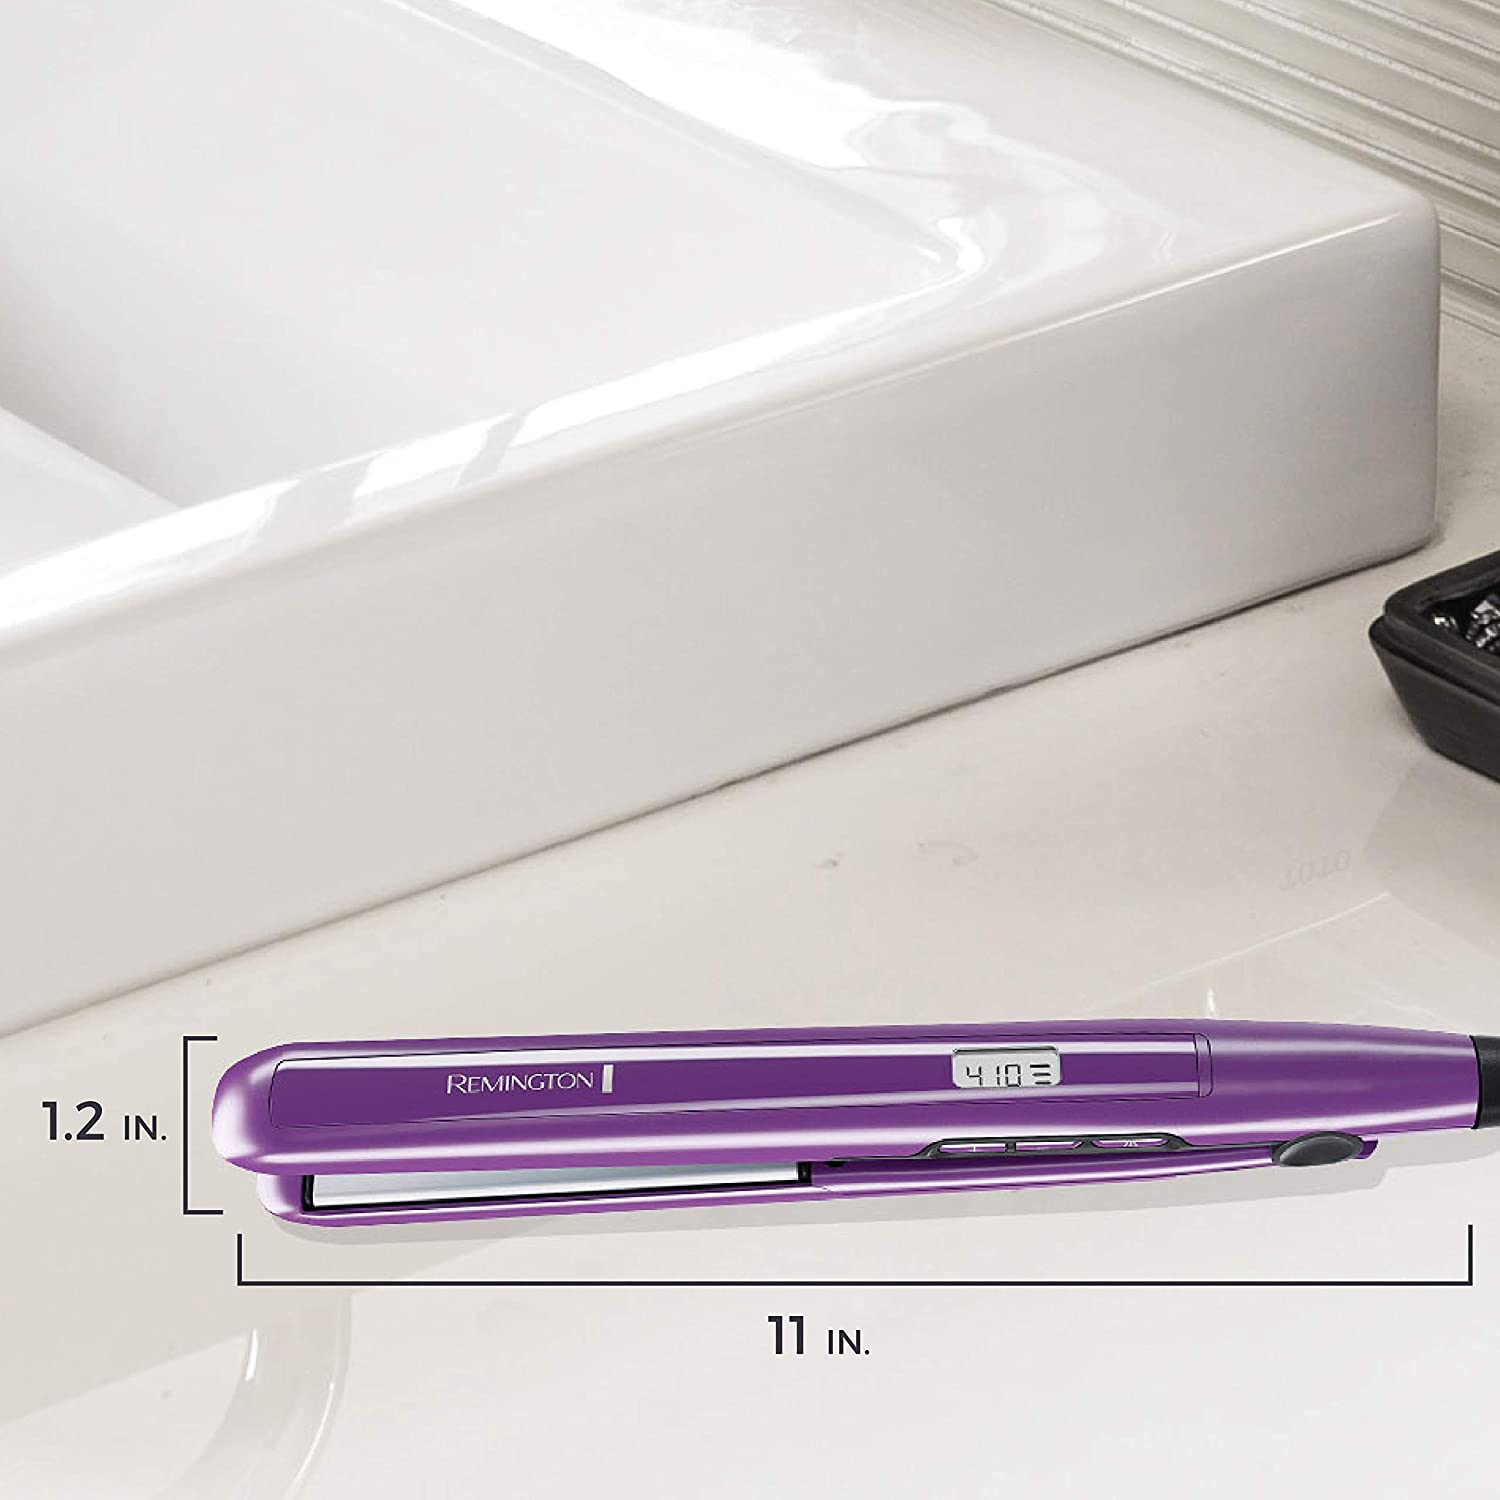 Hair Straightener, Anti-Static Flat Iron with Floating Ceramic Plates & Digital Controls - Purple